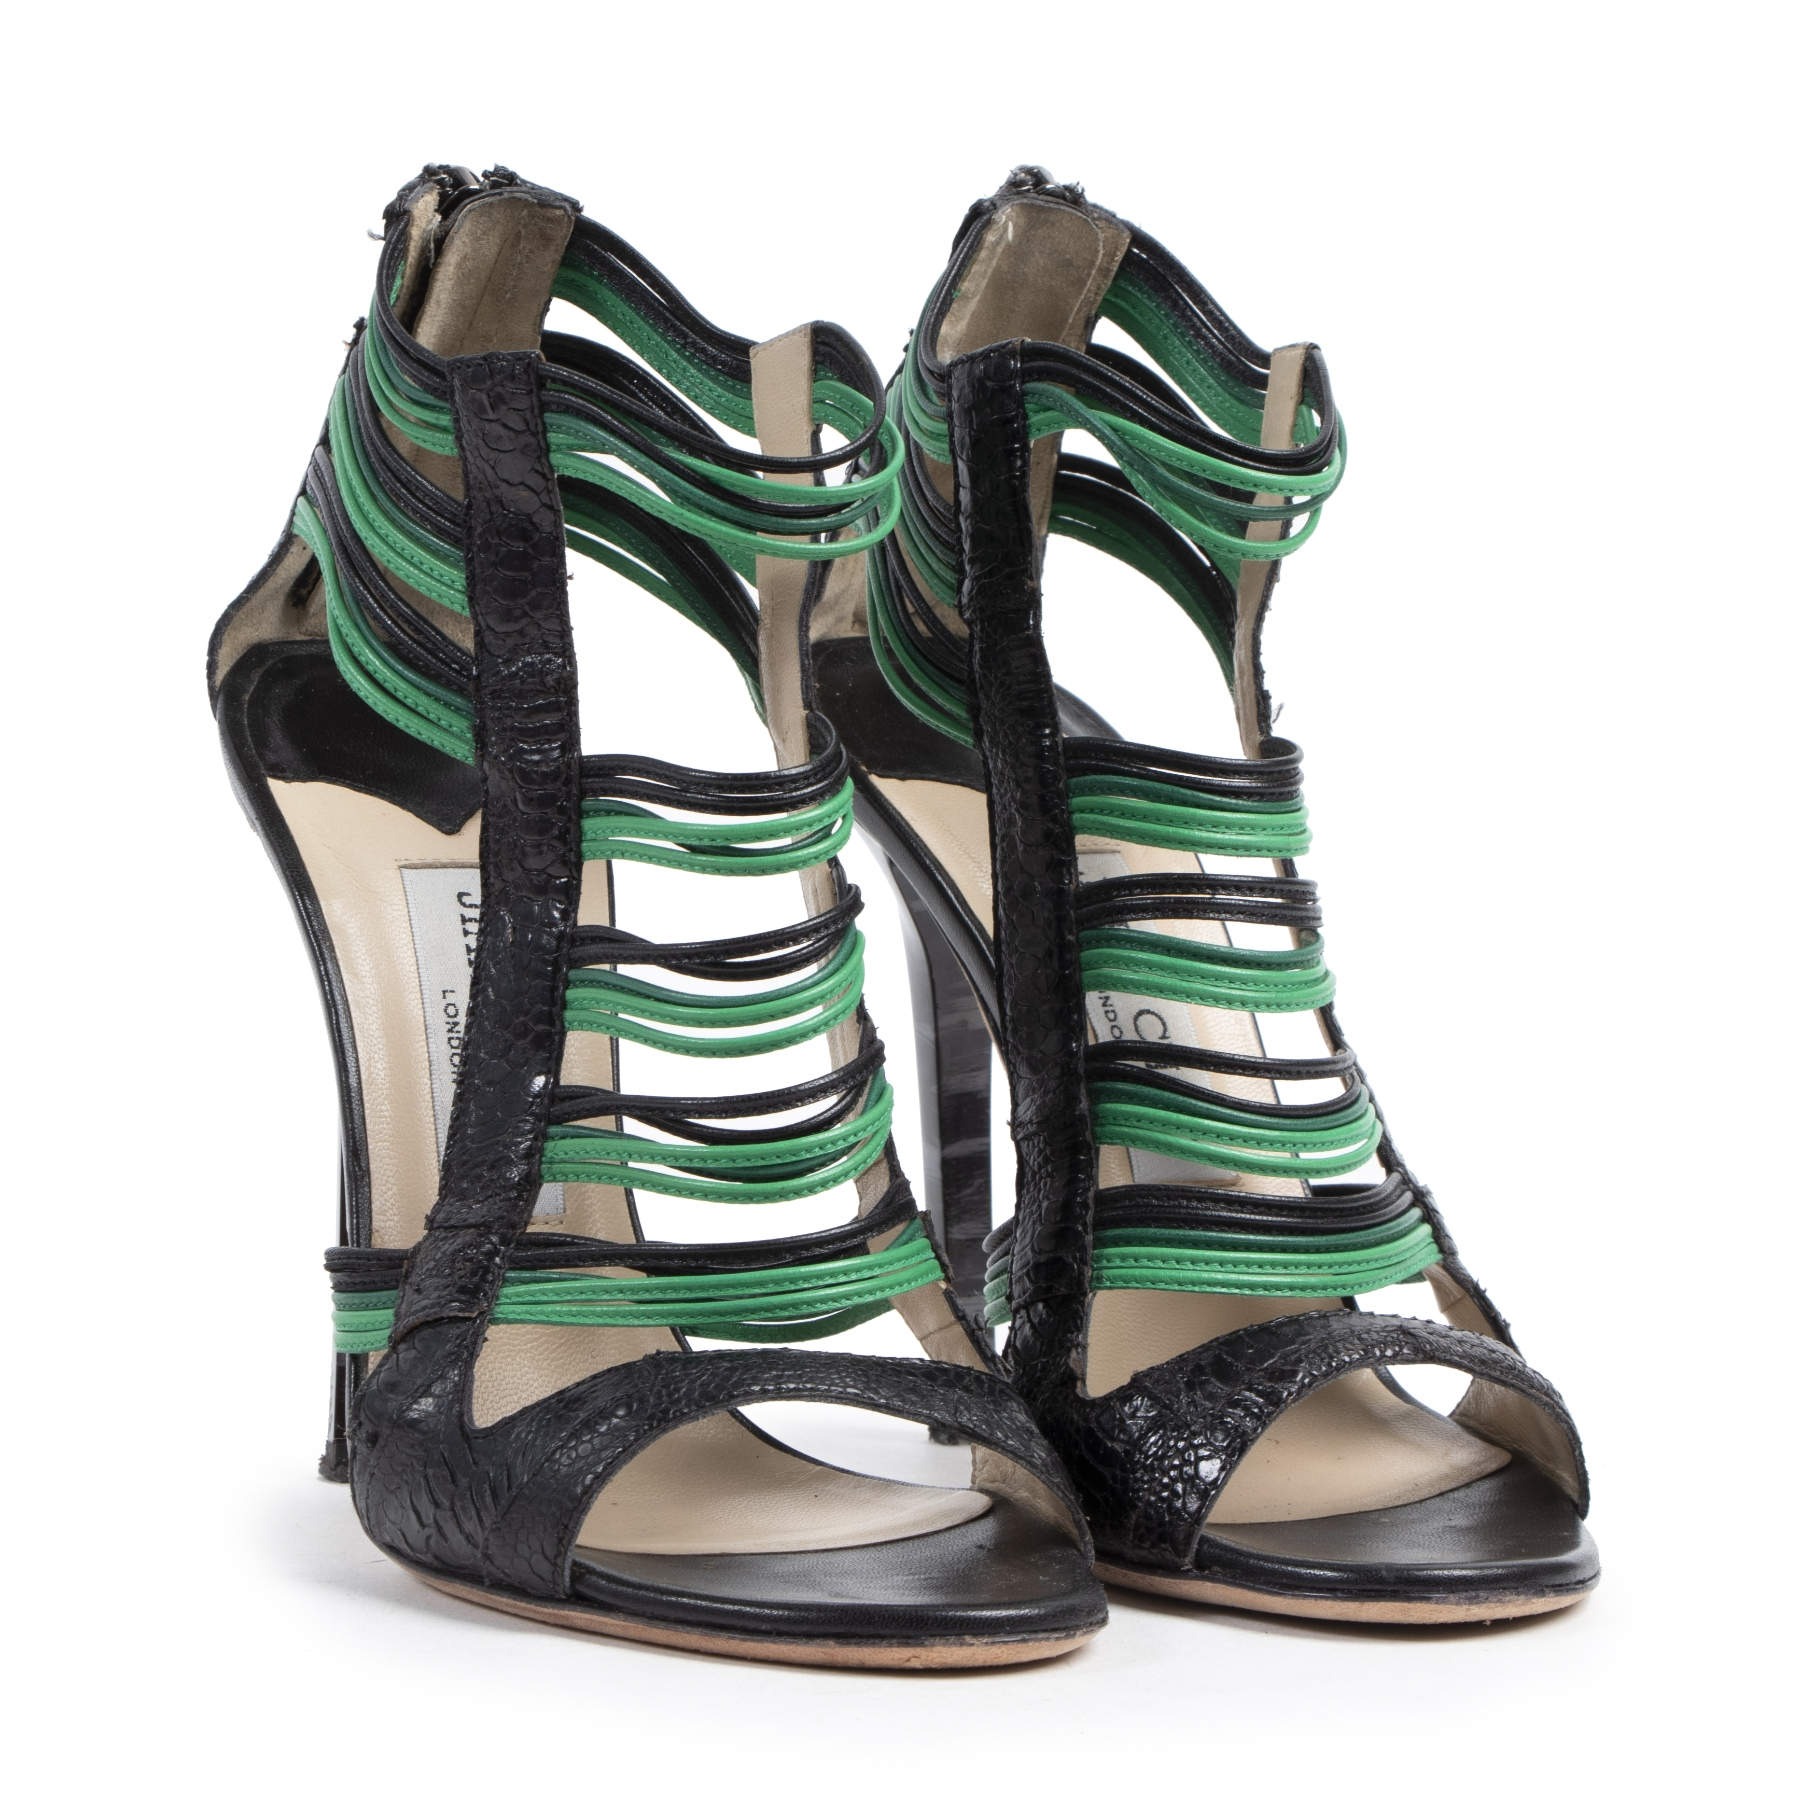 Authentique seconde-main vintage Jimmy Choo Black And Green Cage Sandals - Size 37 achète en ligne webshop LabelLOV